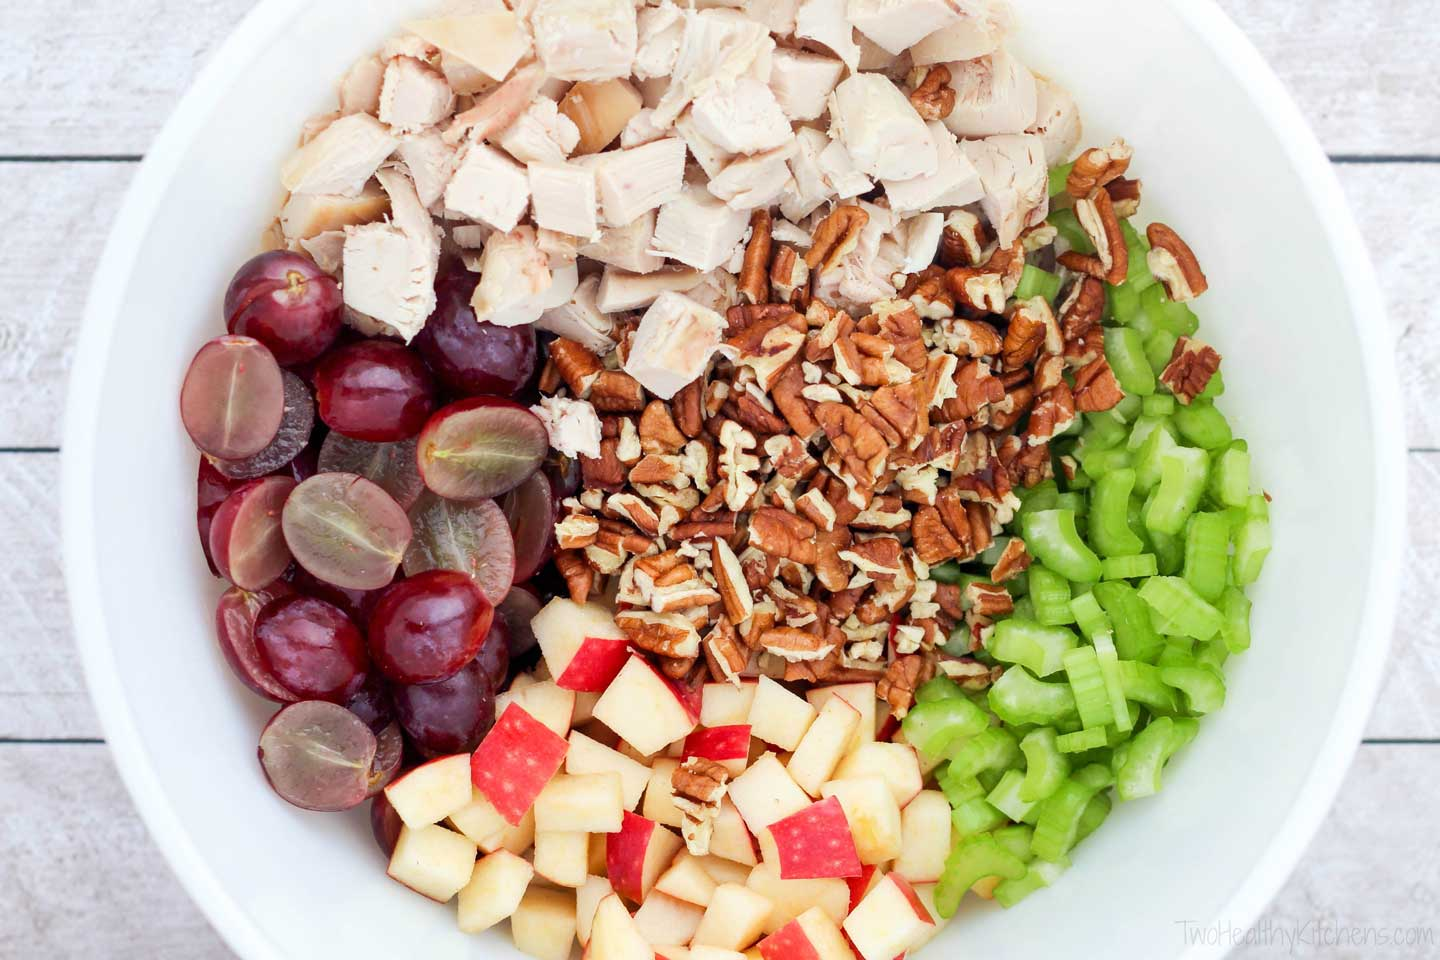 Chicken salad with grapes is always a refreshing twist, and the addition of sweet-tart apples and crunchy pecans is even better! Plus … there's that secret ingredient: tarragon in the yummy Greek yogurt dressing!